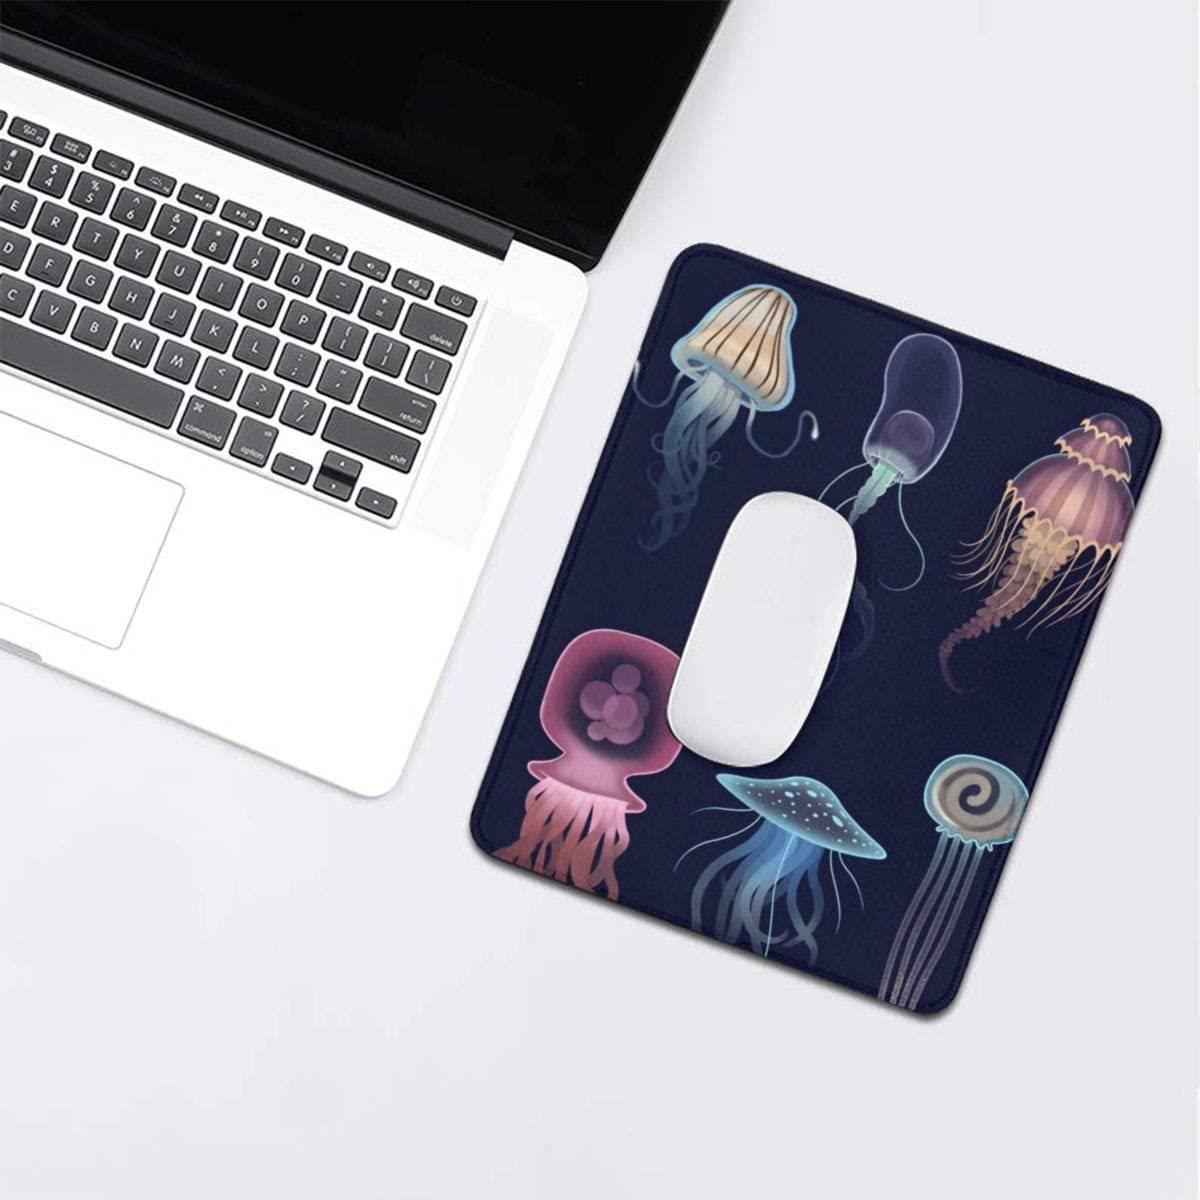 3mm Thick Universe Galaxy Rectangle Rubber Mousepad Gaming Mouse Pad Mouse Mat for Gift Support Wired Wireless Or Bluetooth Mouse 10 X 12 Inch X 0.12